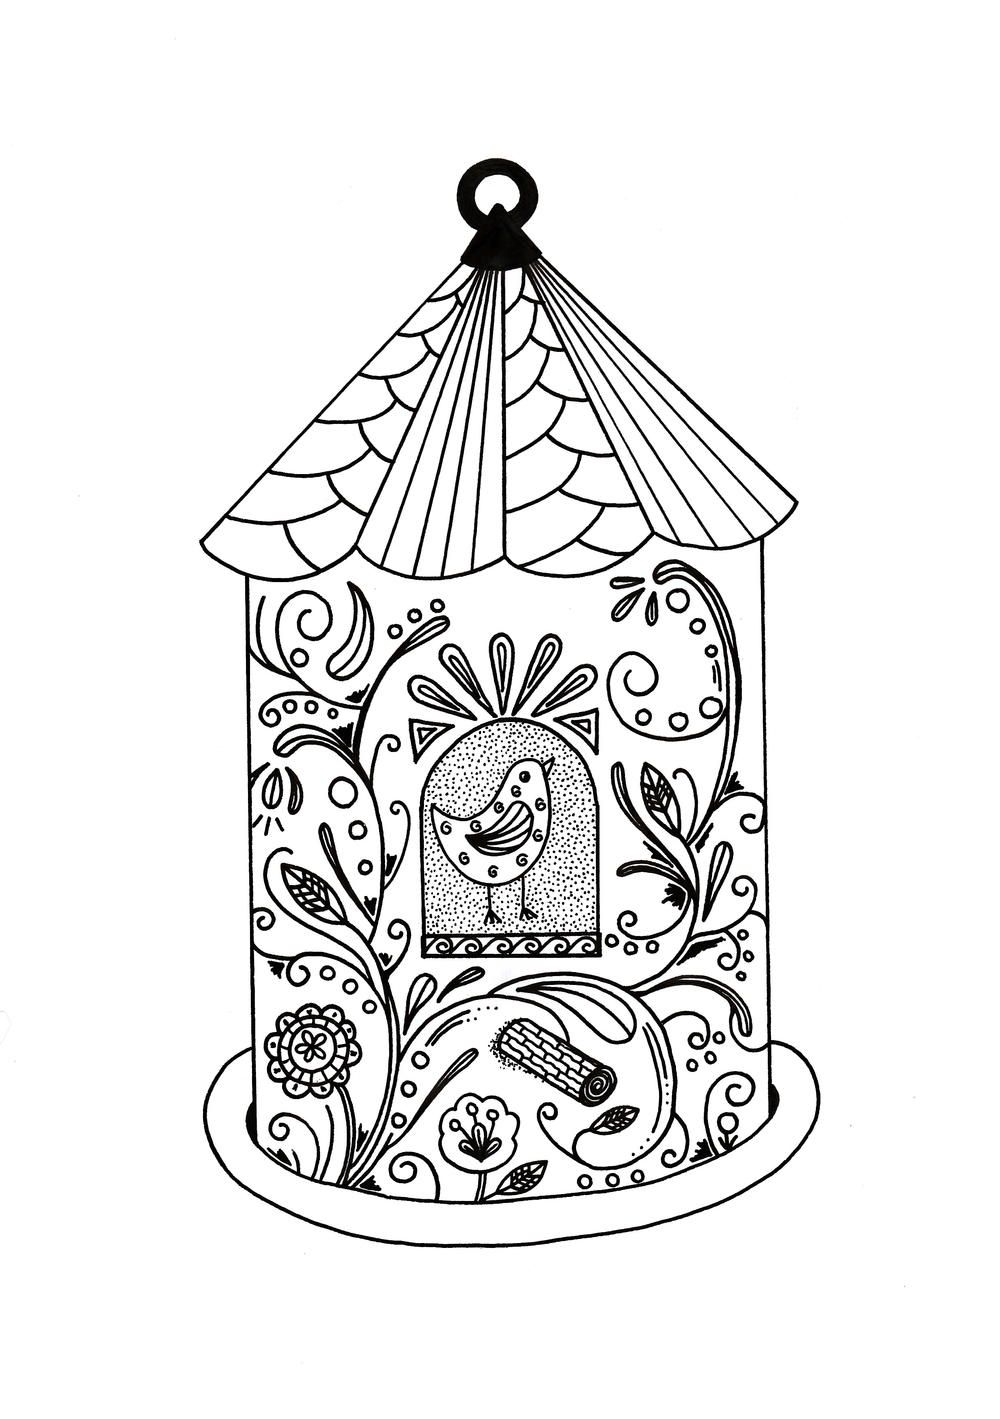 whimsical bird house adult coloring page pinterest bird houses Barn Swallow Bird House Plans it is spring time to celebrate nature in all its glory this whimsical bird